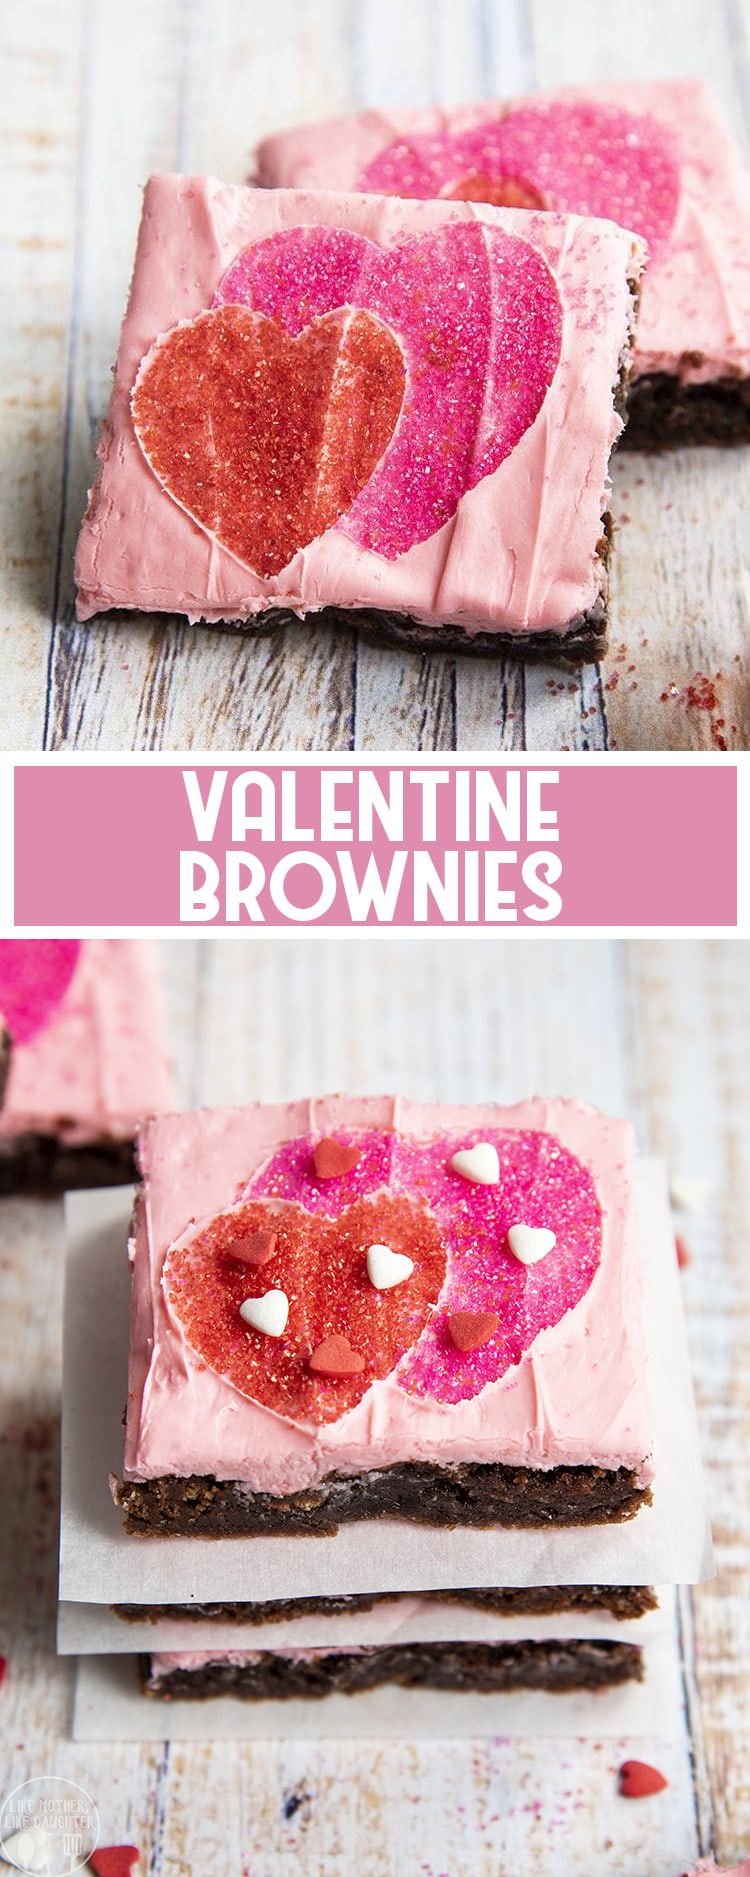 Valentine Brownies are a super easy and fun brownie topped with pink frosting and a heart pattern made with sprinkles!